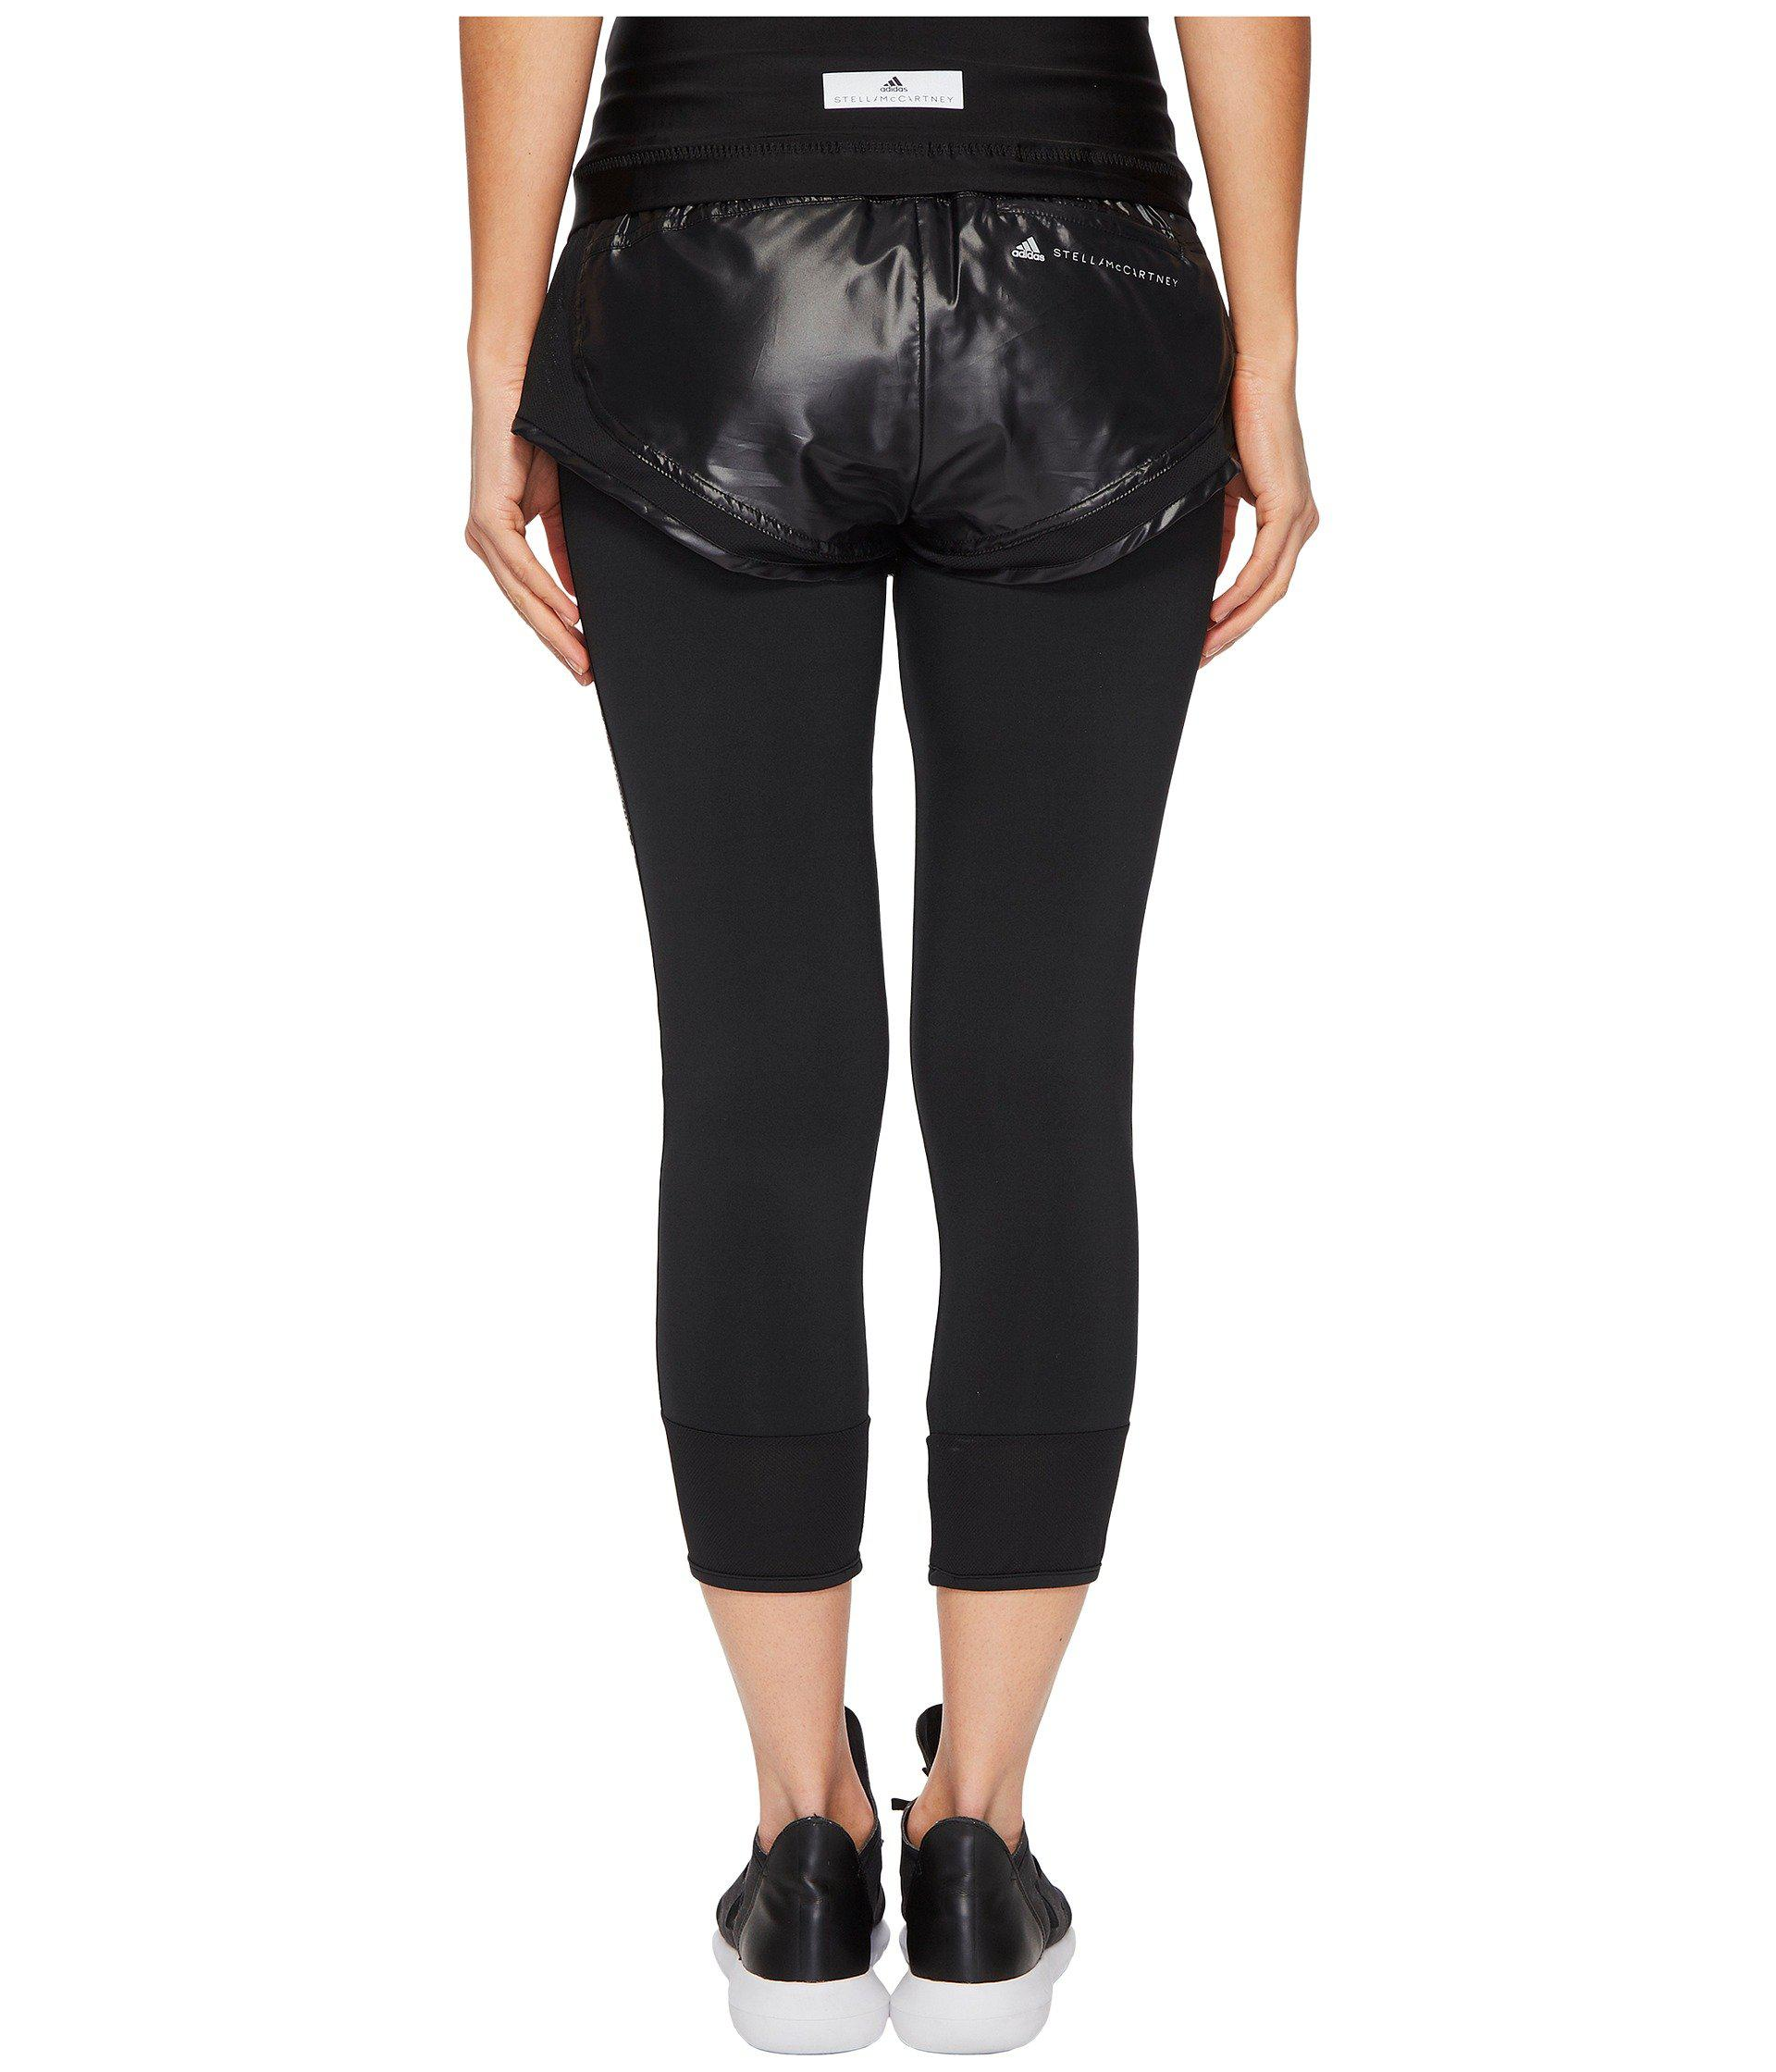 146f17ee0aaa Adidas By Stella McCartney - Performance Essentials Shorts Over Tights  Cg0899 (black) Women s Casual. View fullscreen